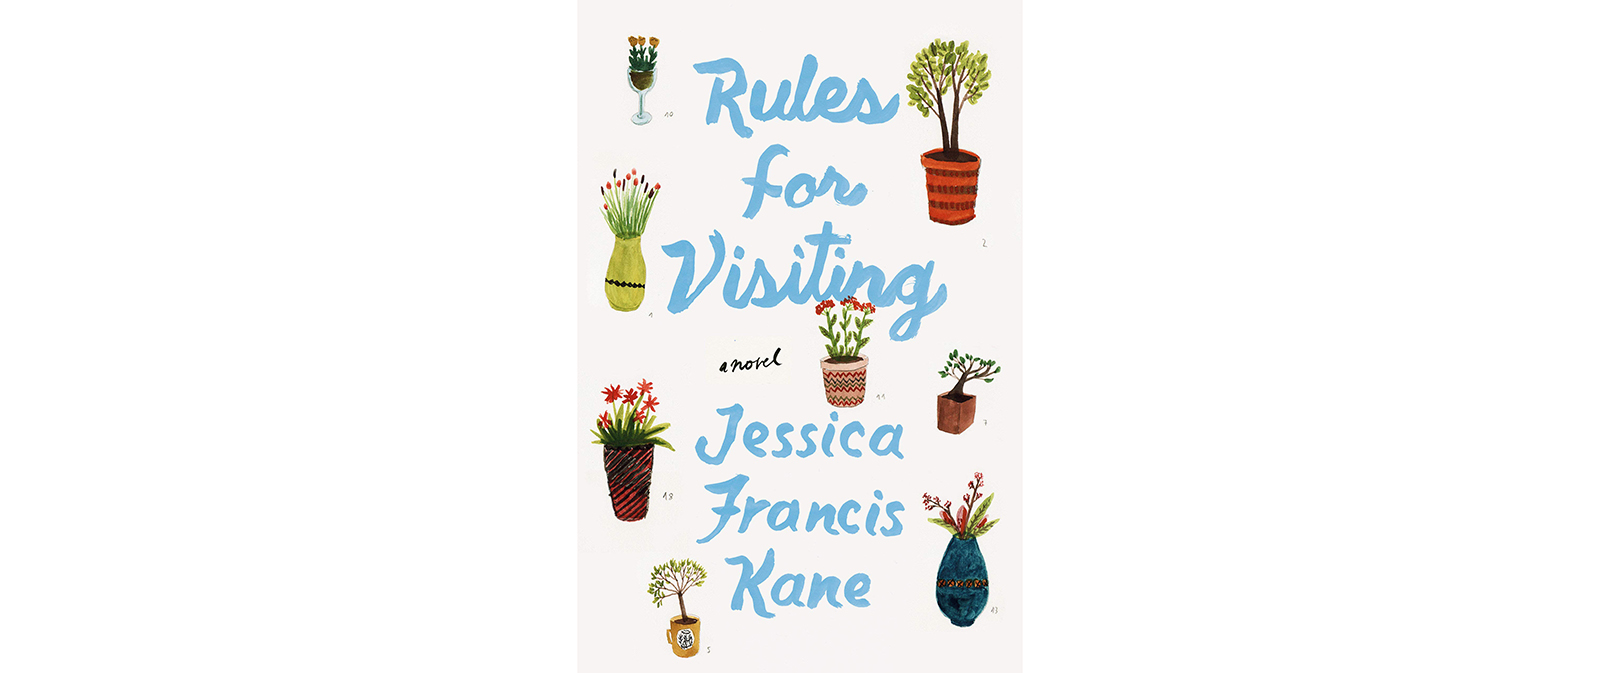 Cover of Rules for Visiting, by Jessica Francis Kane